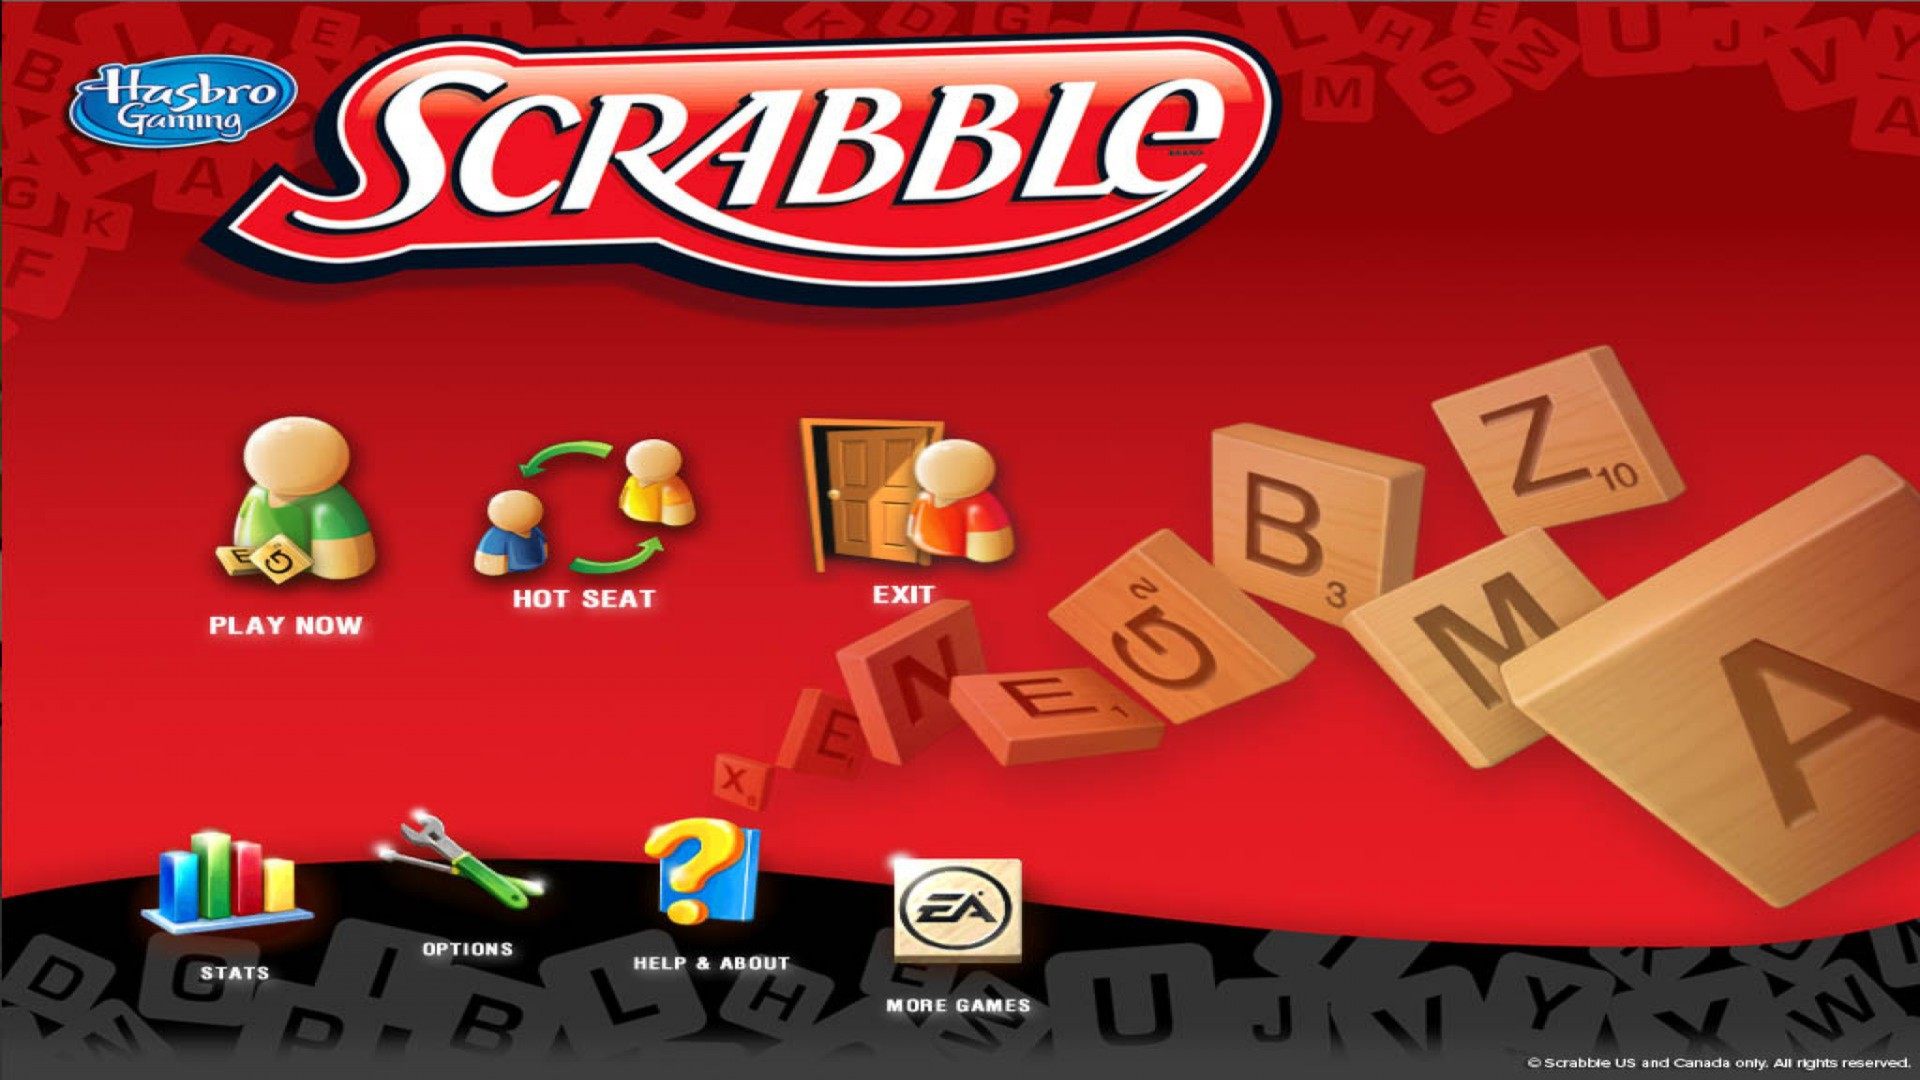 Scrabble On Steam,Three Way Switch Wiring With Dimmer